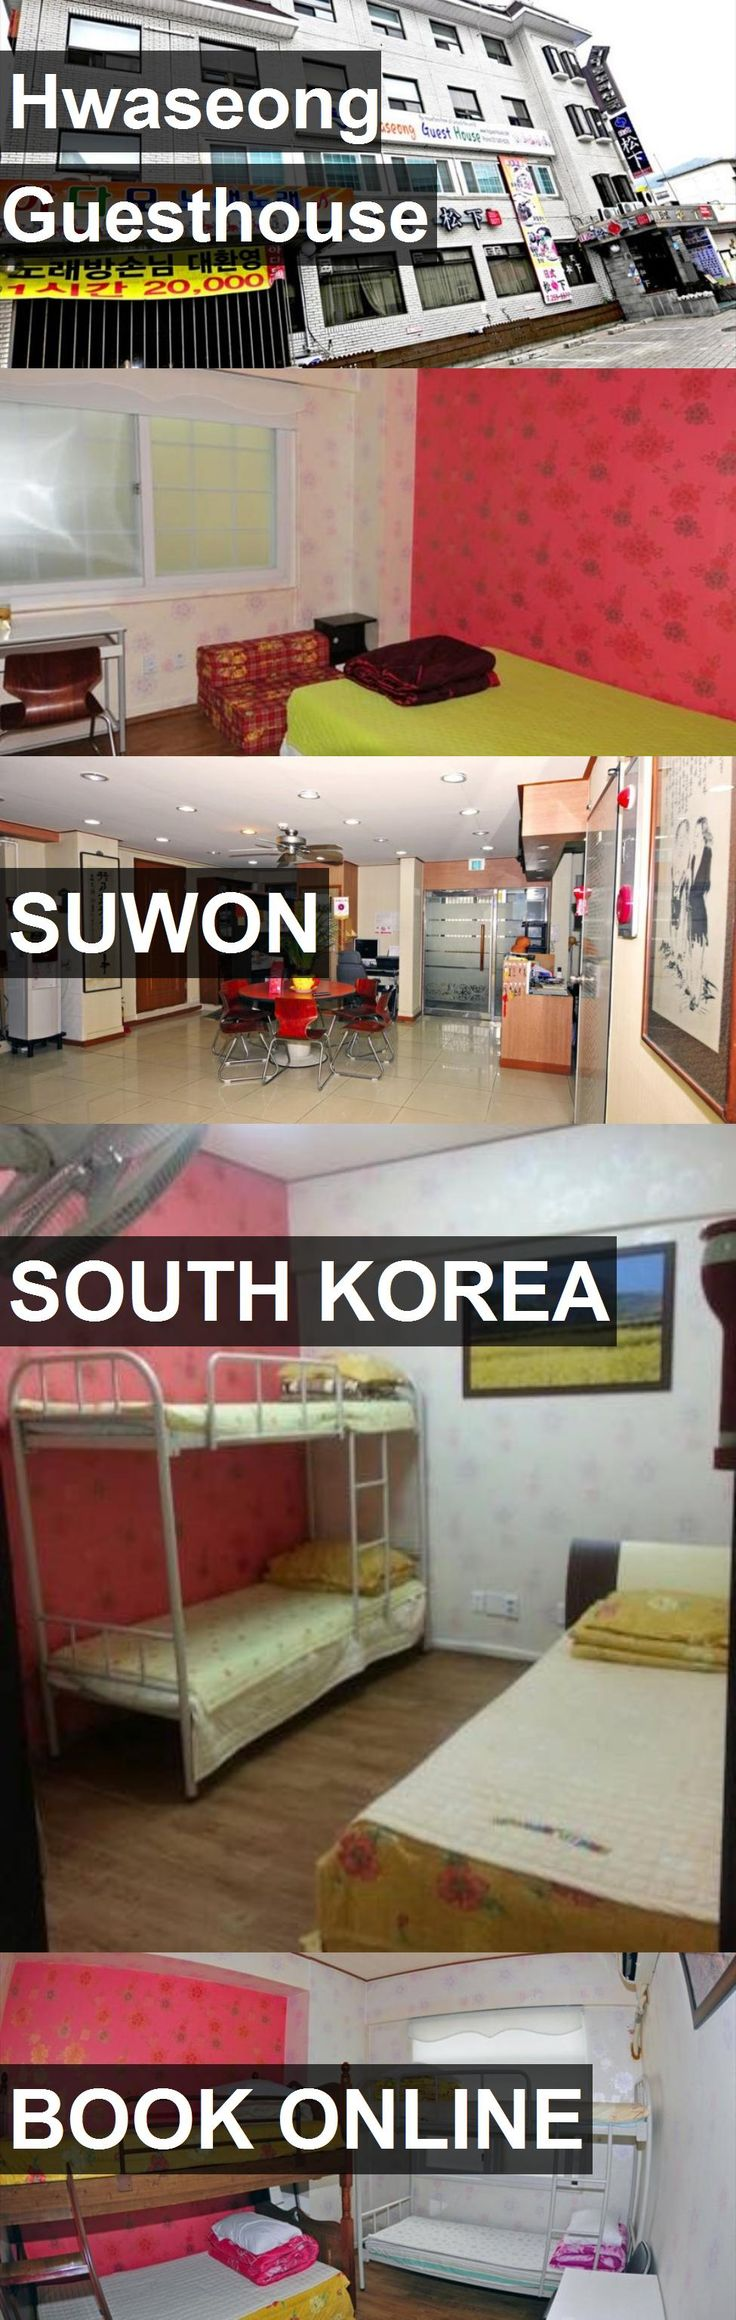 Hotel Hwaseong Guesthouse in Suwon, South Korea. For more information, photos, reviews and best prices please follow the link. #SouthKorea #Suwon #travel #vacation #hotel